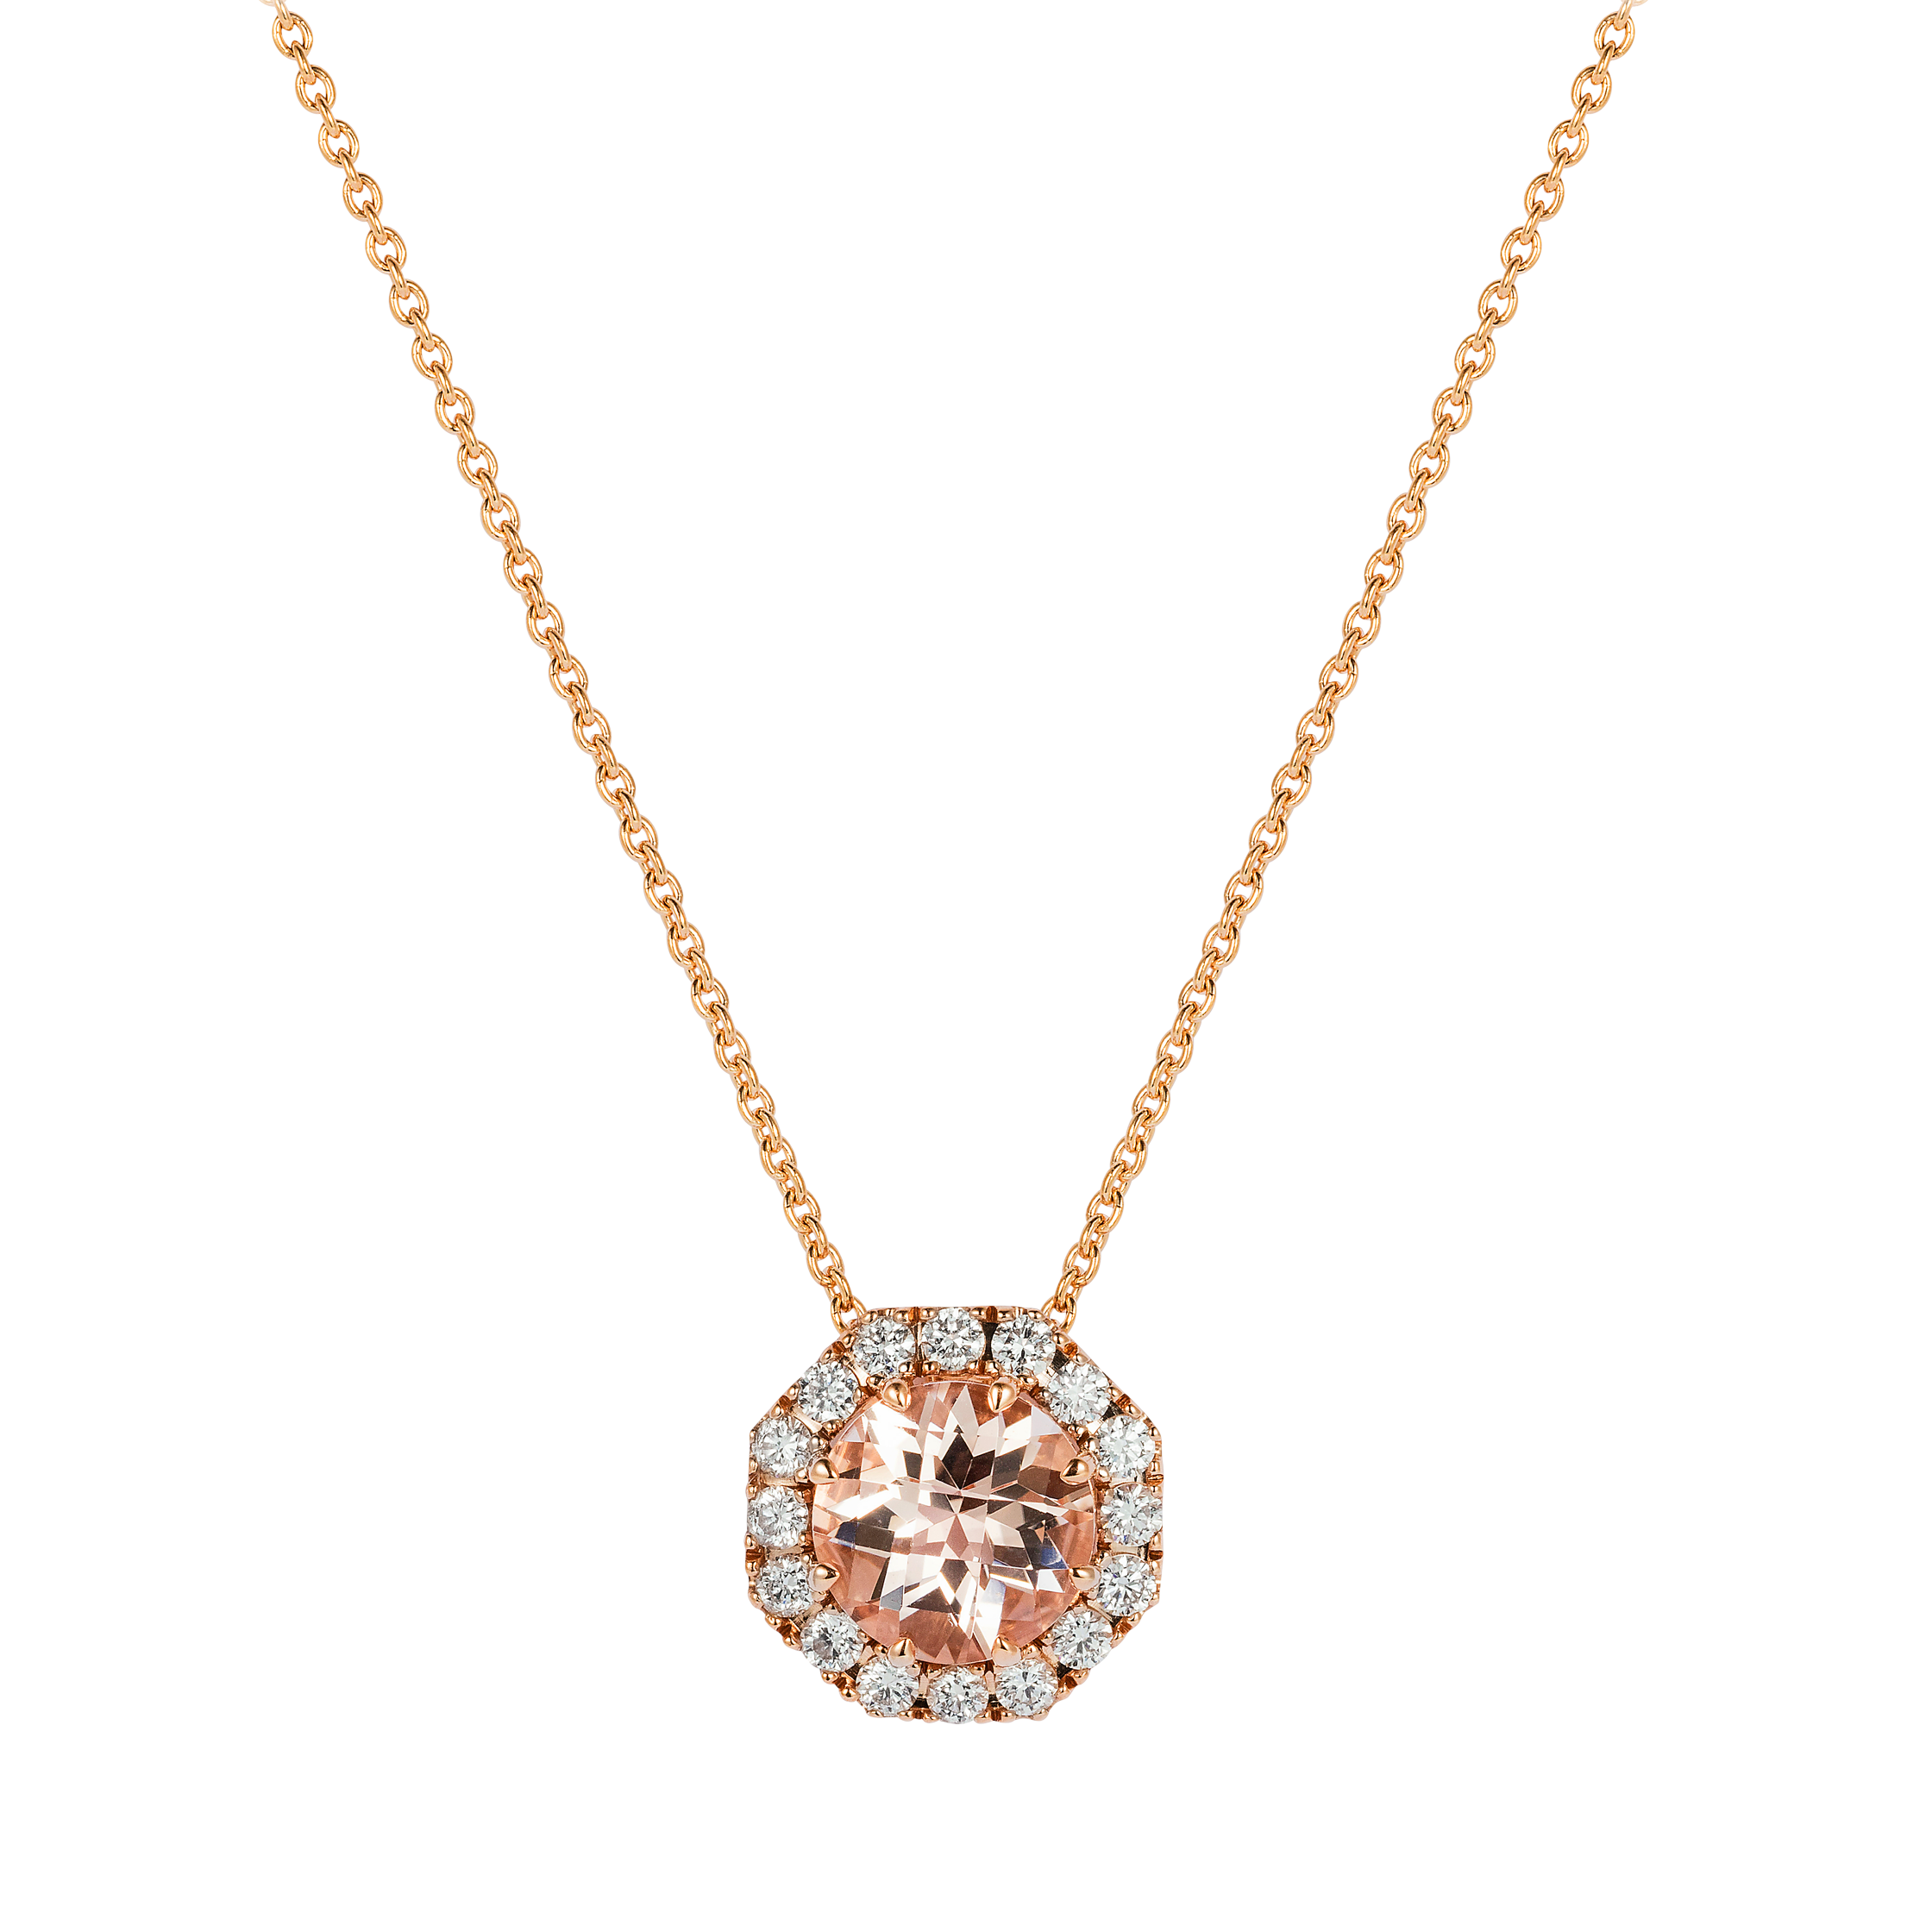 morganite pendant necklace original ahalife amour alui product